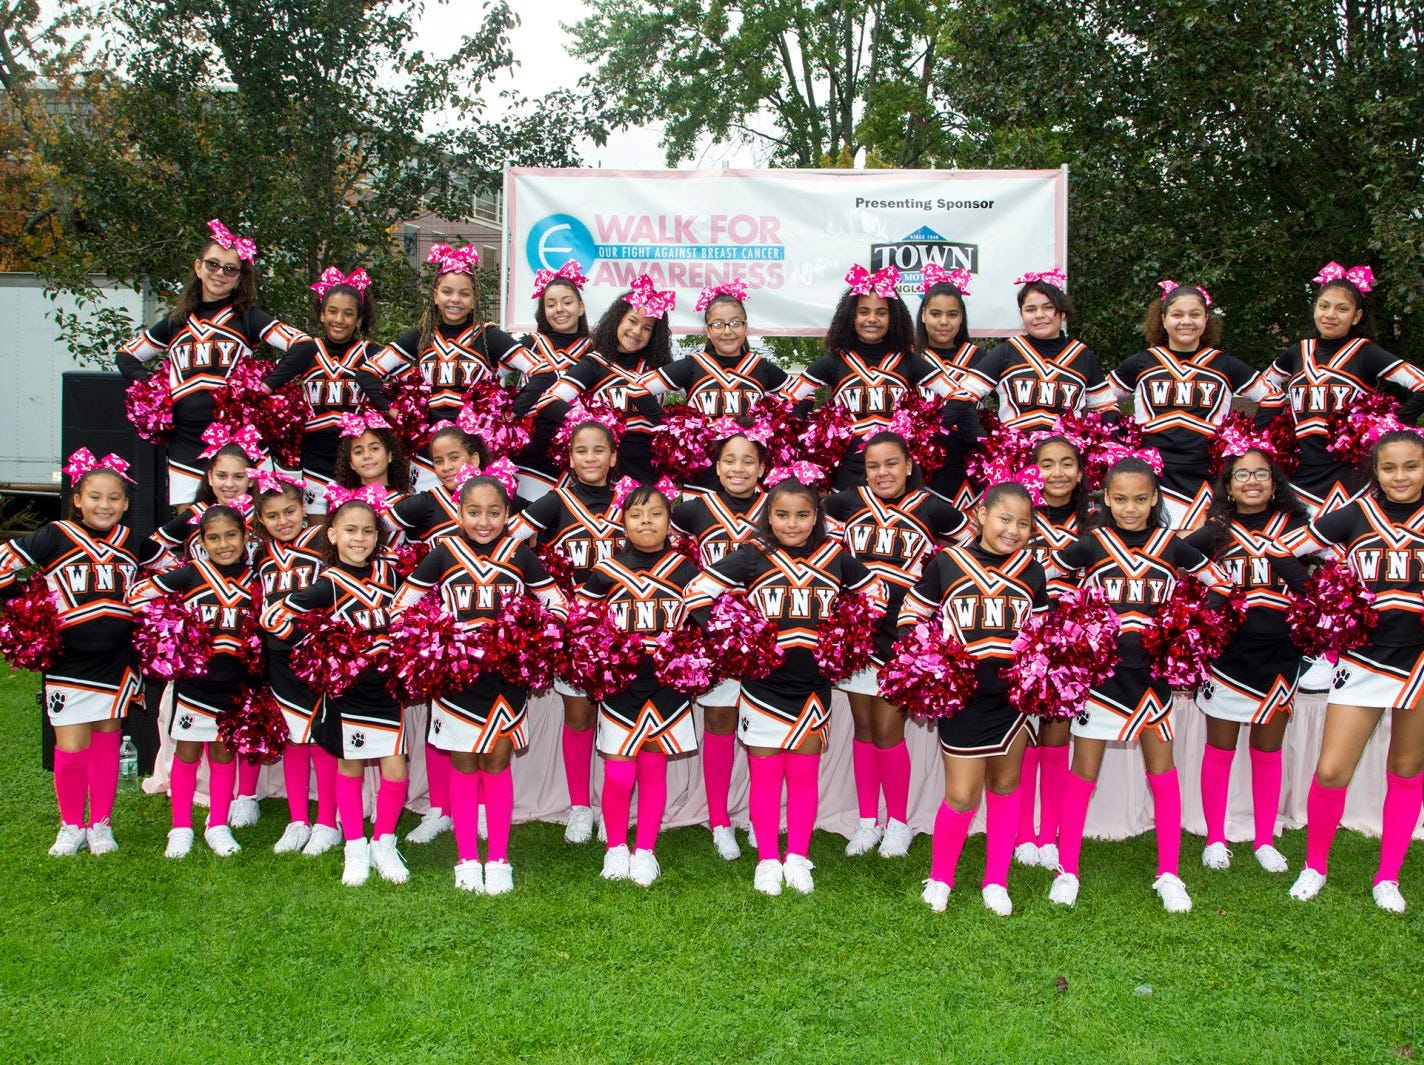 West New York Cheerleaders. Englewood Health Foundation hosted its 2018 Walk for Awareness and Susan Lucianna Memorial Dog Walk dedicated in memory of Walk for Awareness co-founder Paul Fader, Esq. 10/07/2018